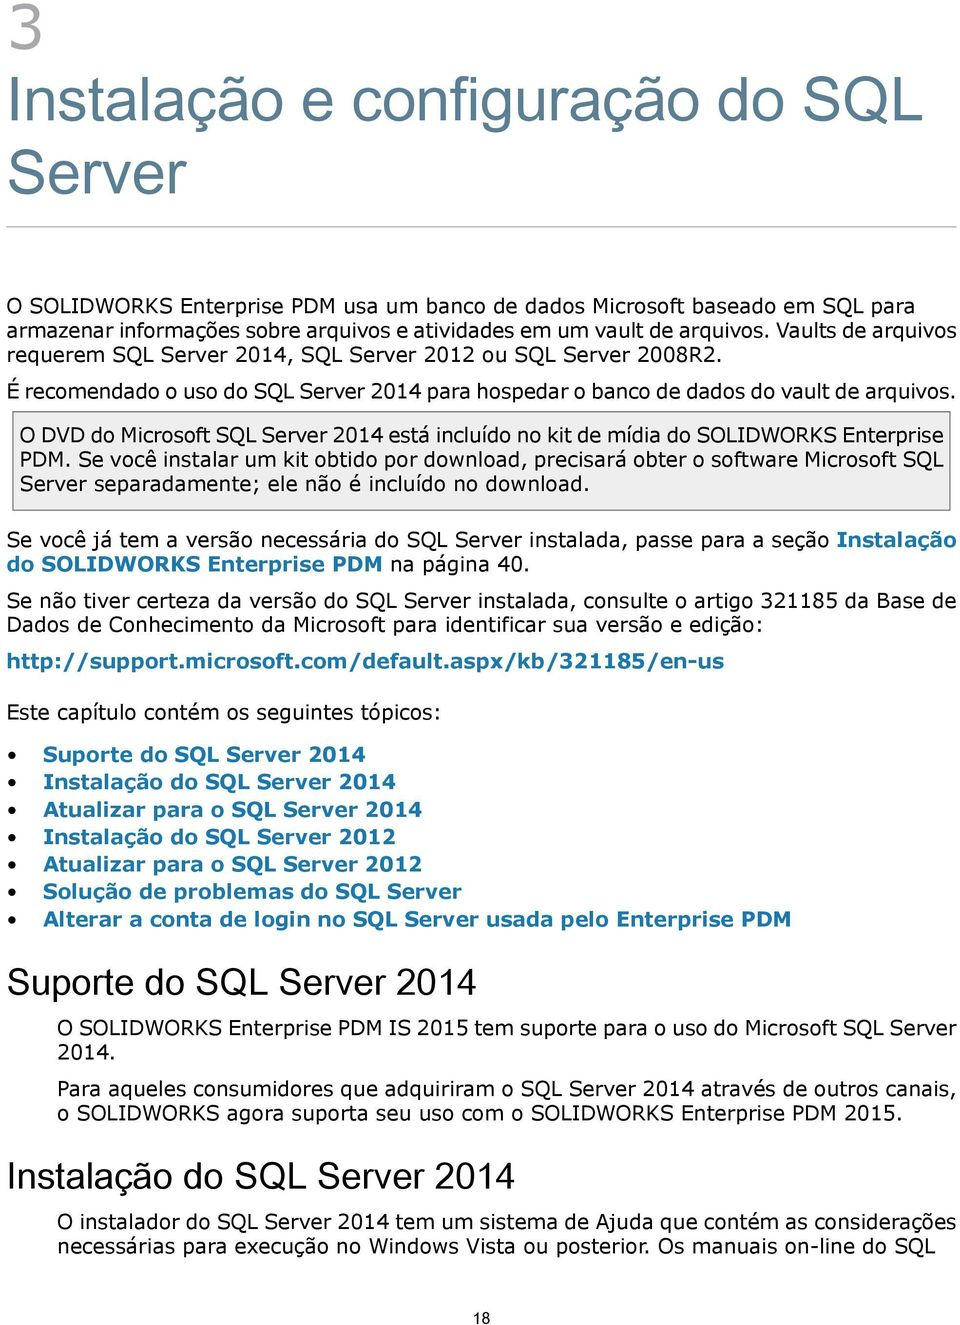 O DVD do Microsoft SQL Server 2014 está incluído no kit de mídia do SOLIDWORKS Enterprise PDM.